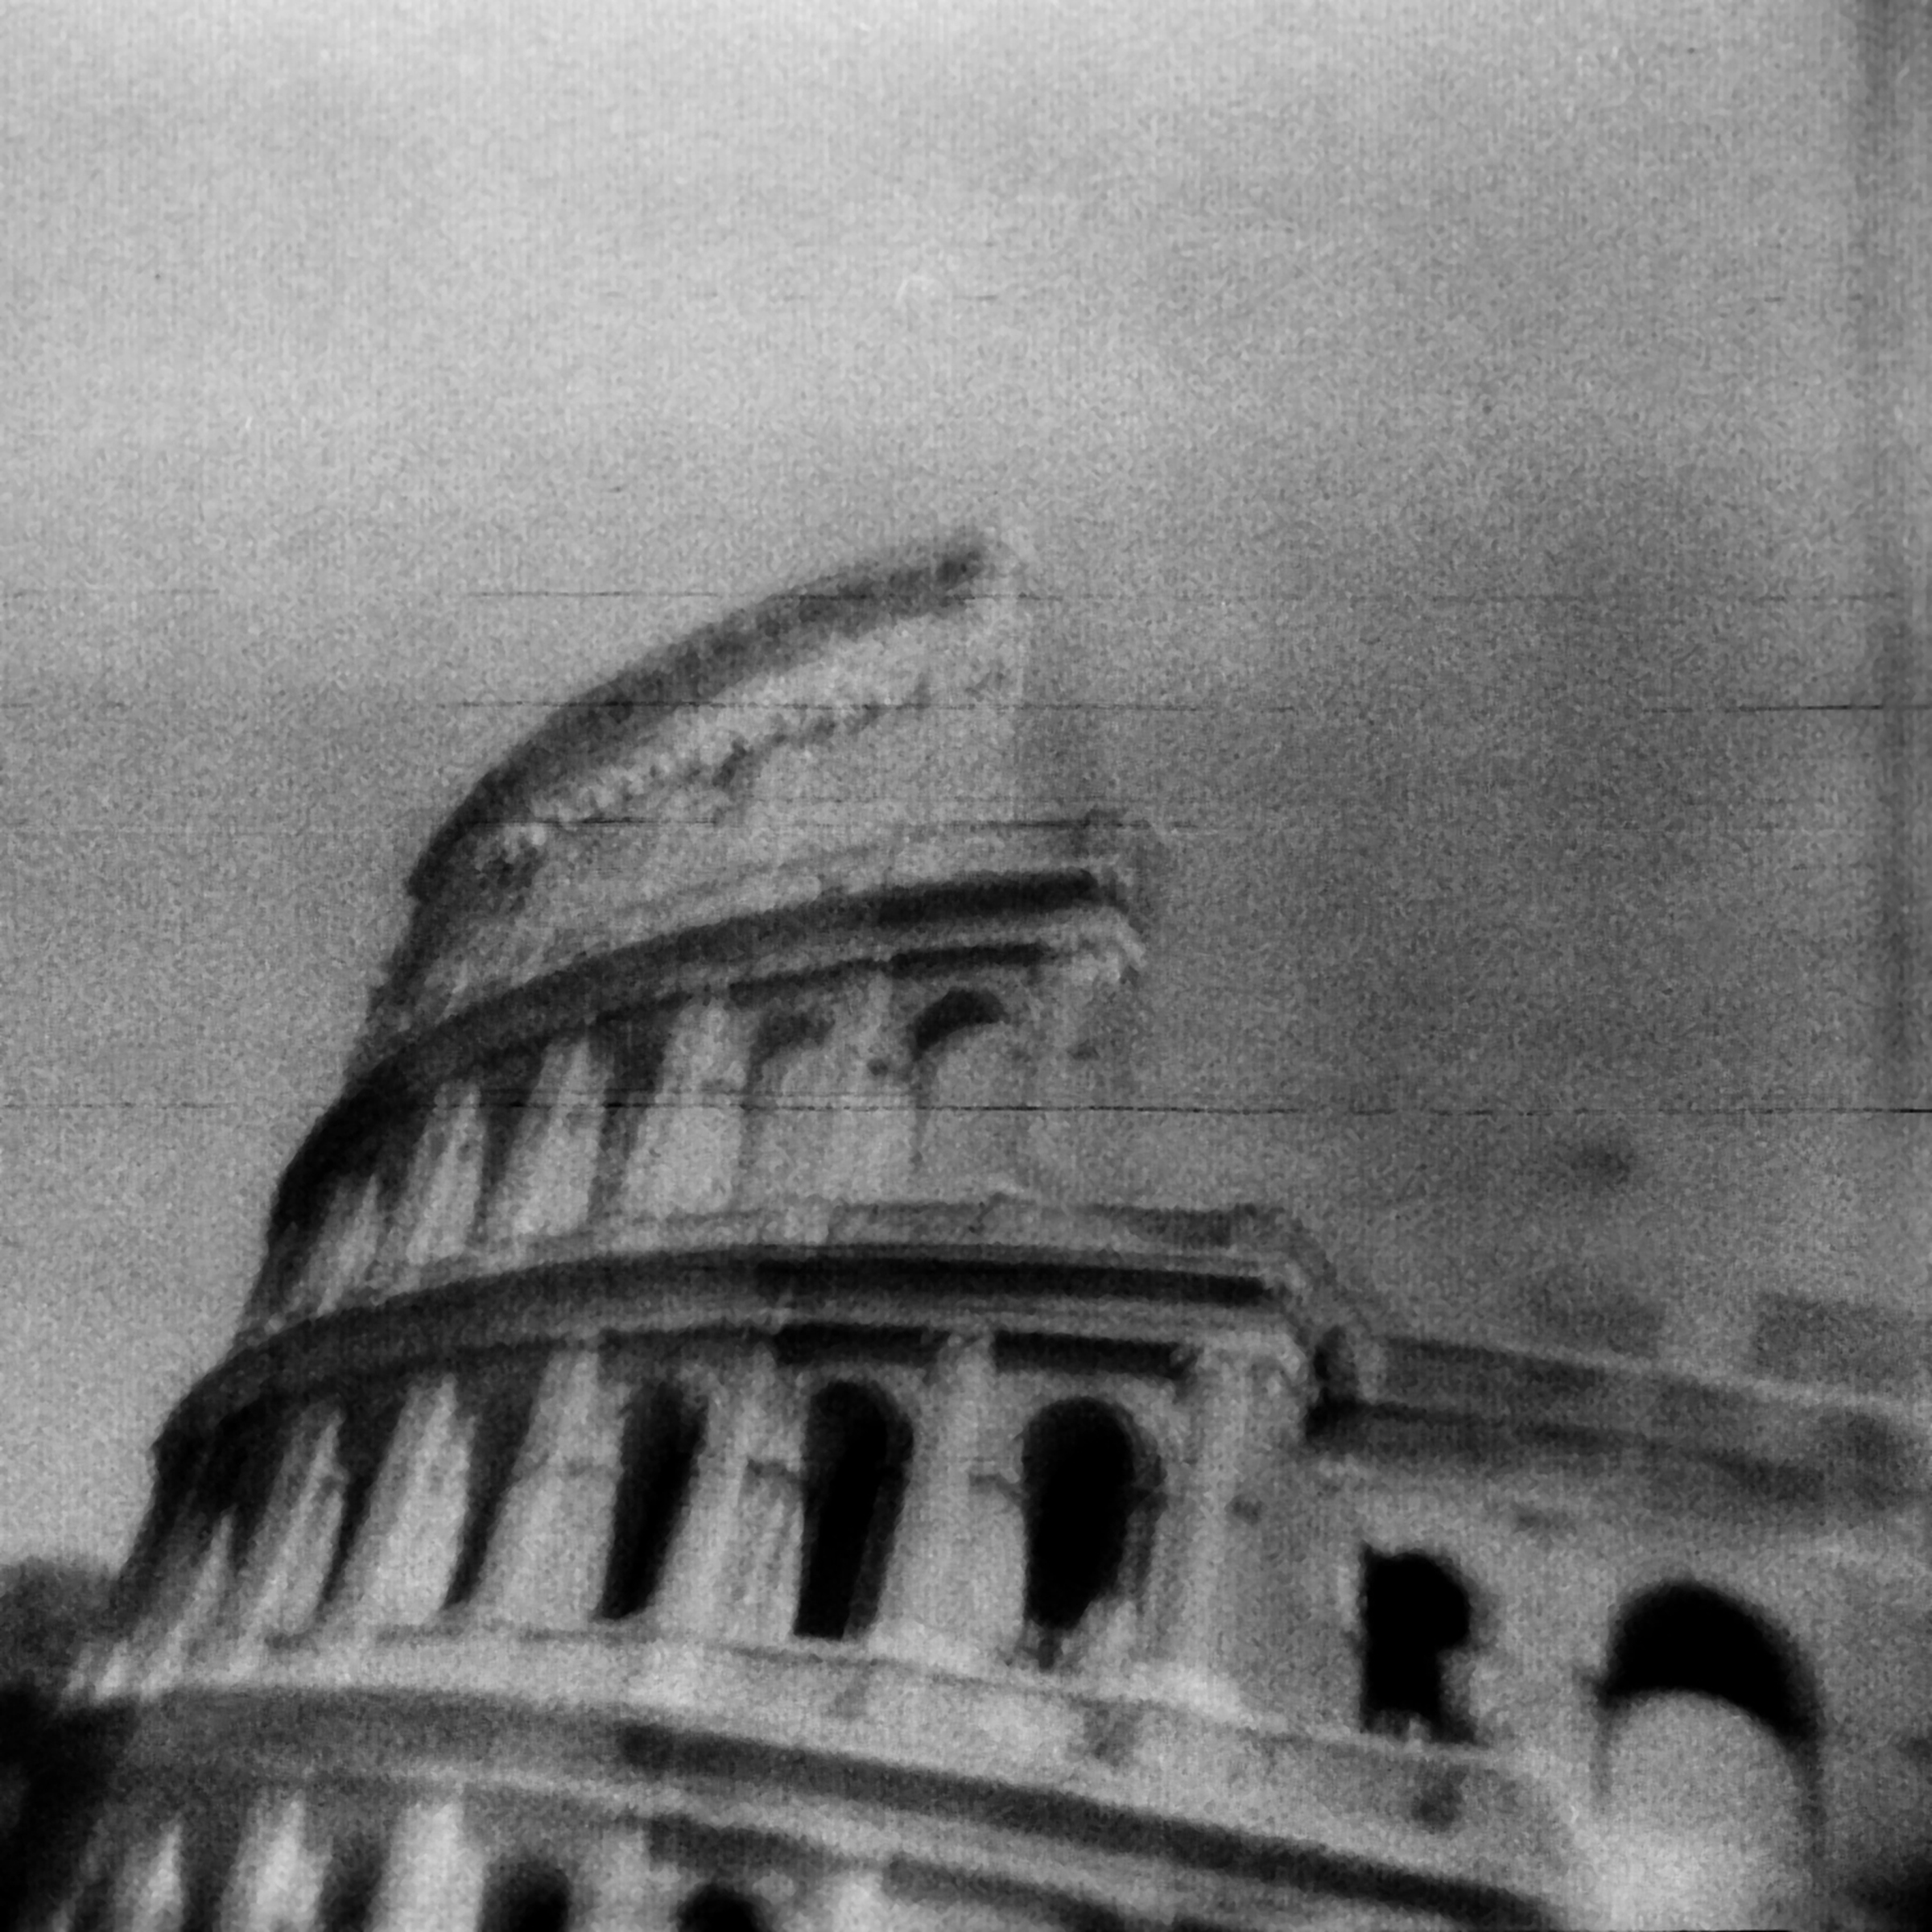 Anthea Baxter-Page, Colosseum, Rome, from the Ghost Towns series, 2006